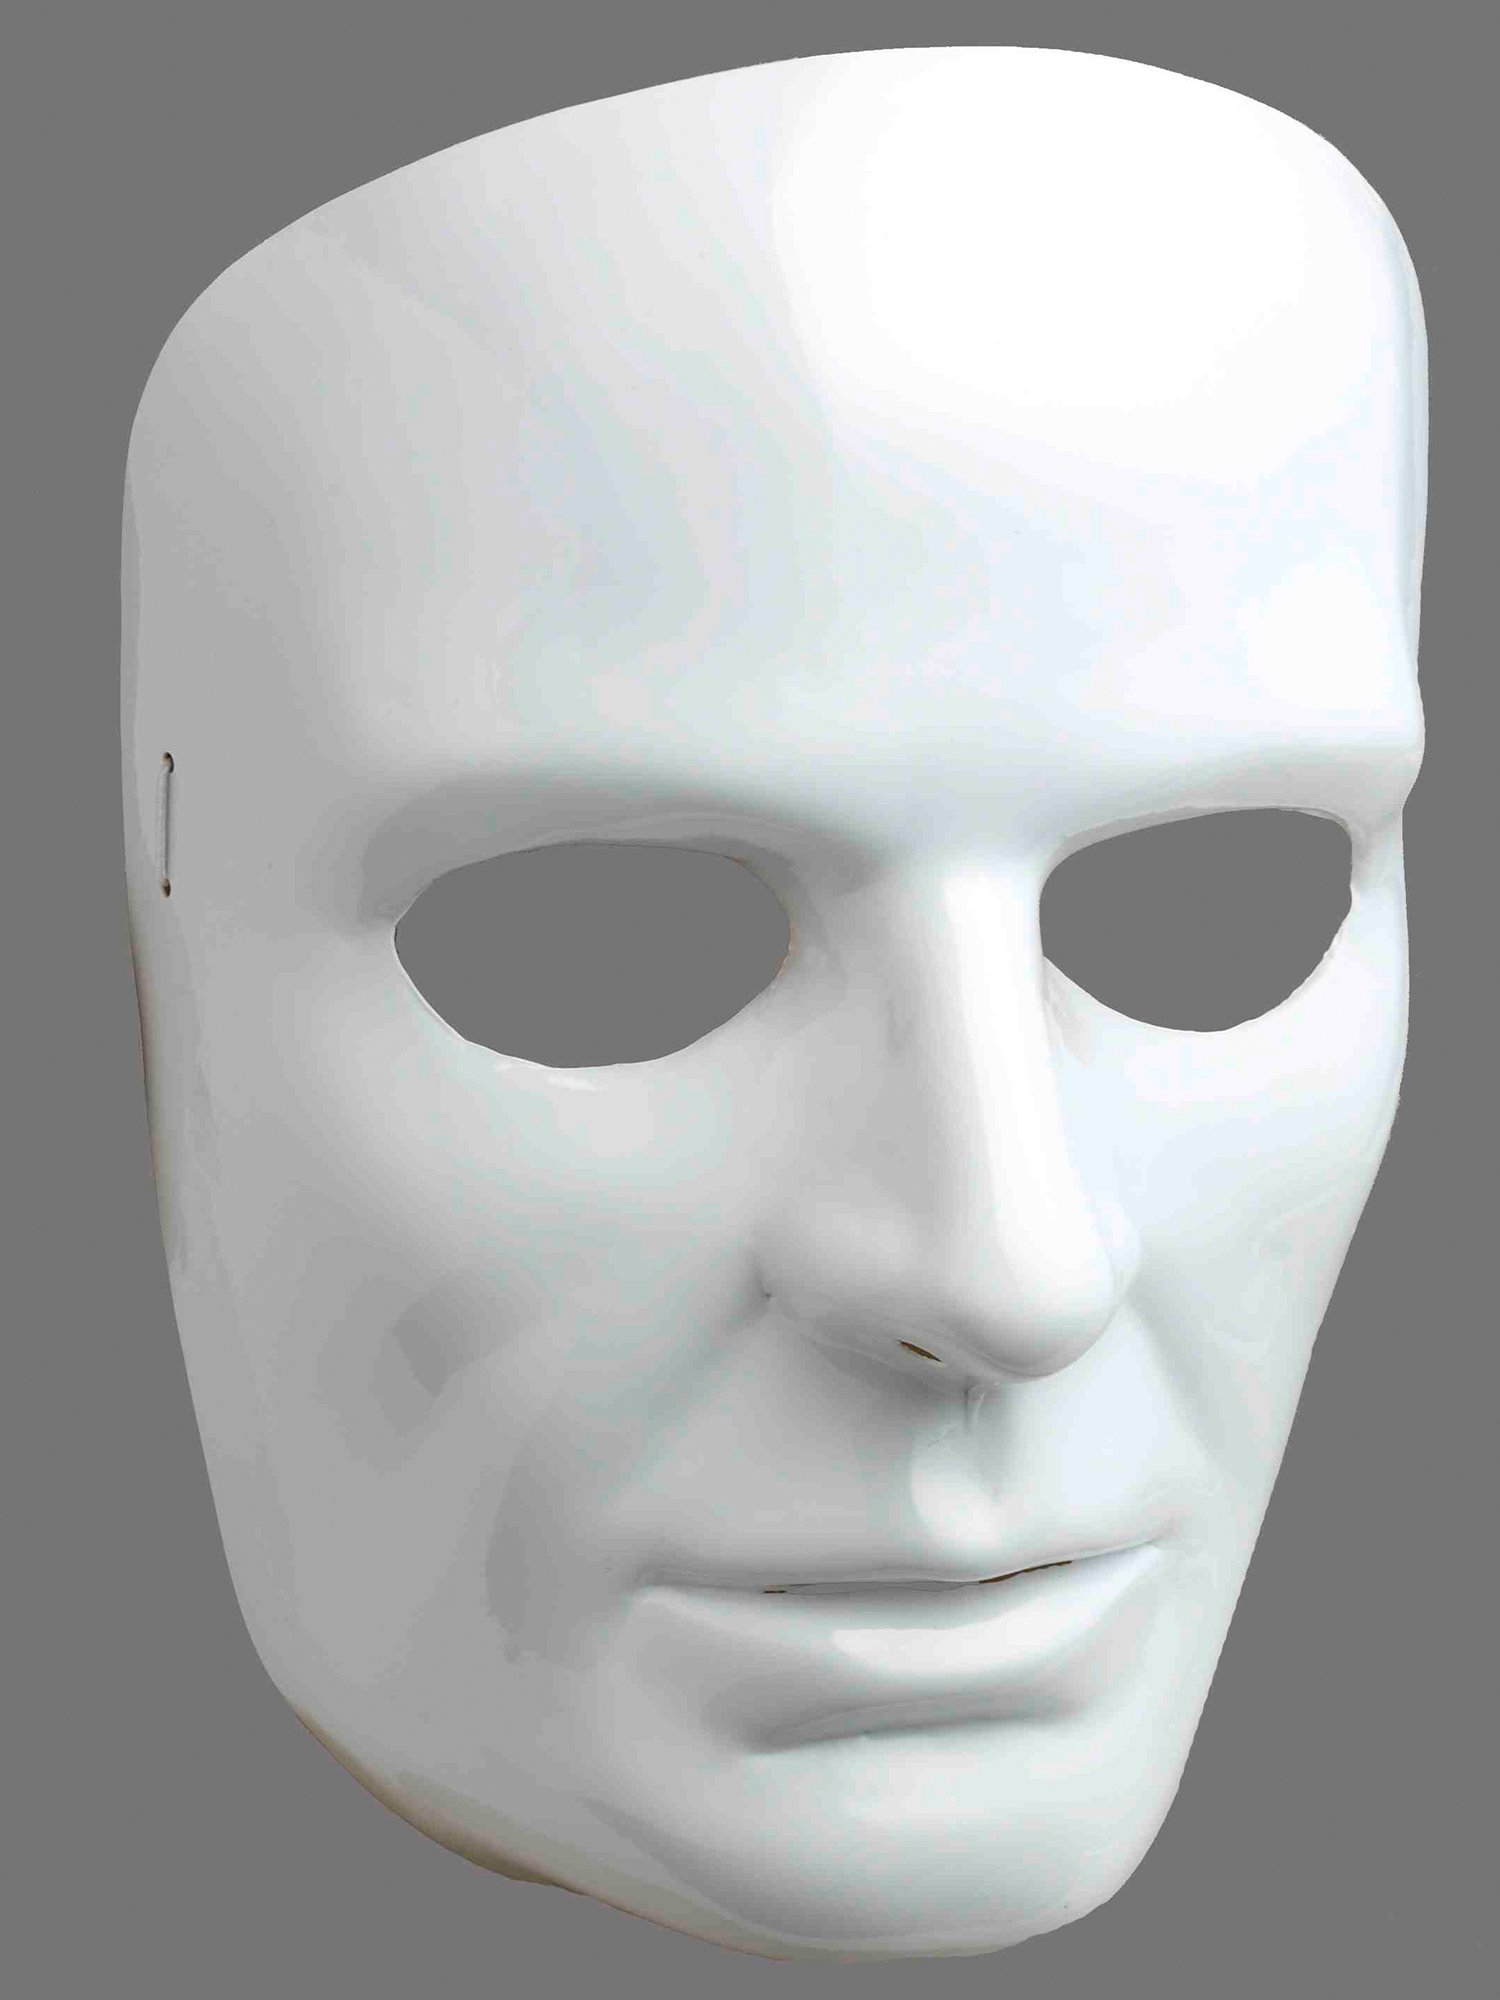 Forum Novelties 67838 Men's White Full Face Mask, One Size, Pack of 1 by Forum Novelties (Image #1)